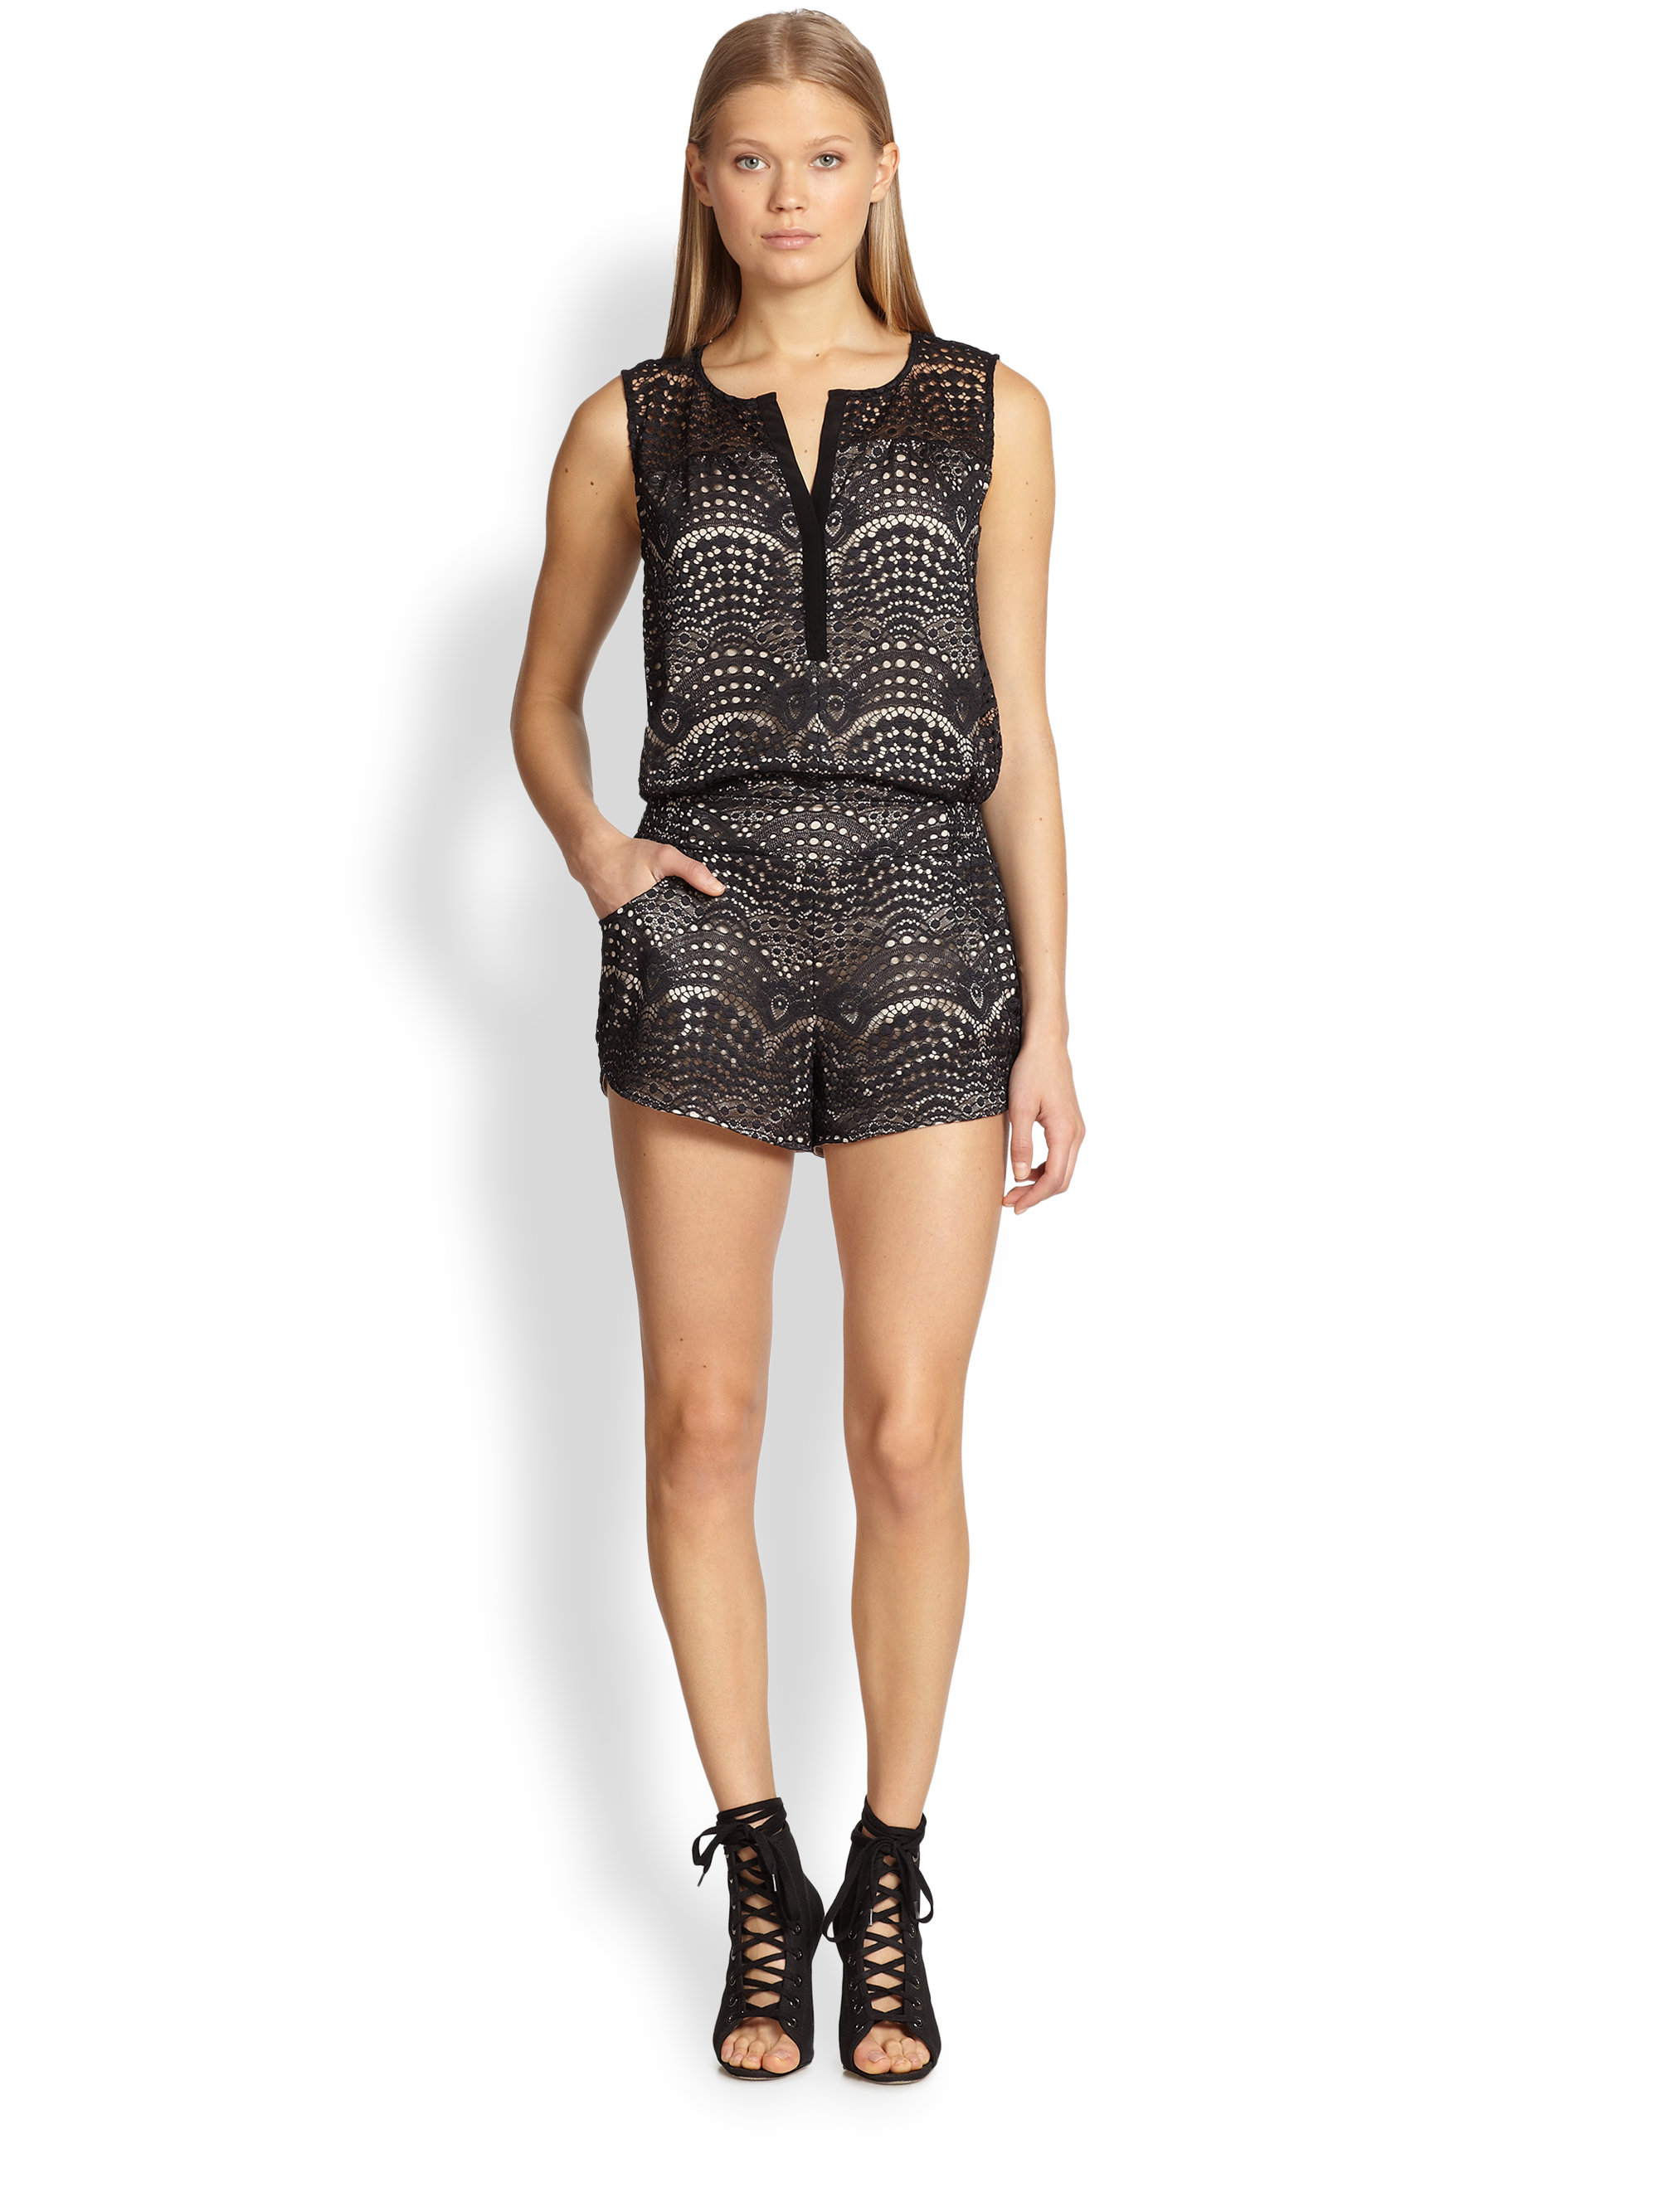 Twelfth street cynthia vincent Lace Short Jumpsuit in Black | Lyst